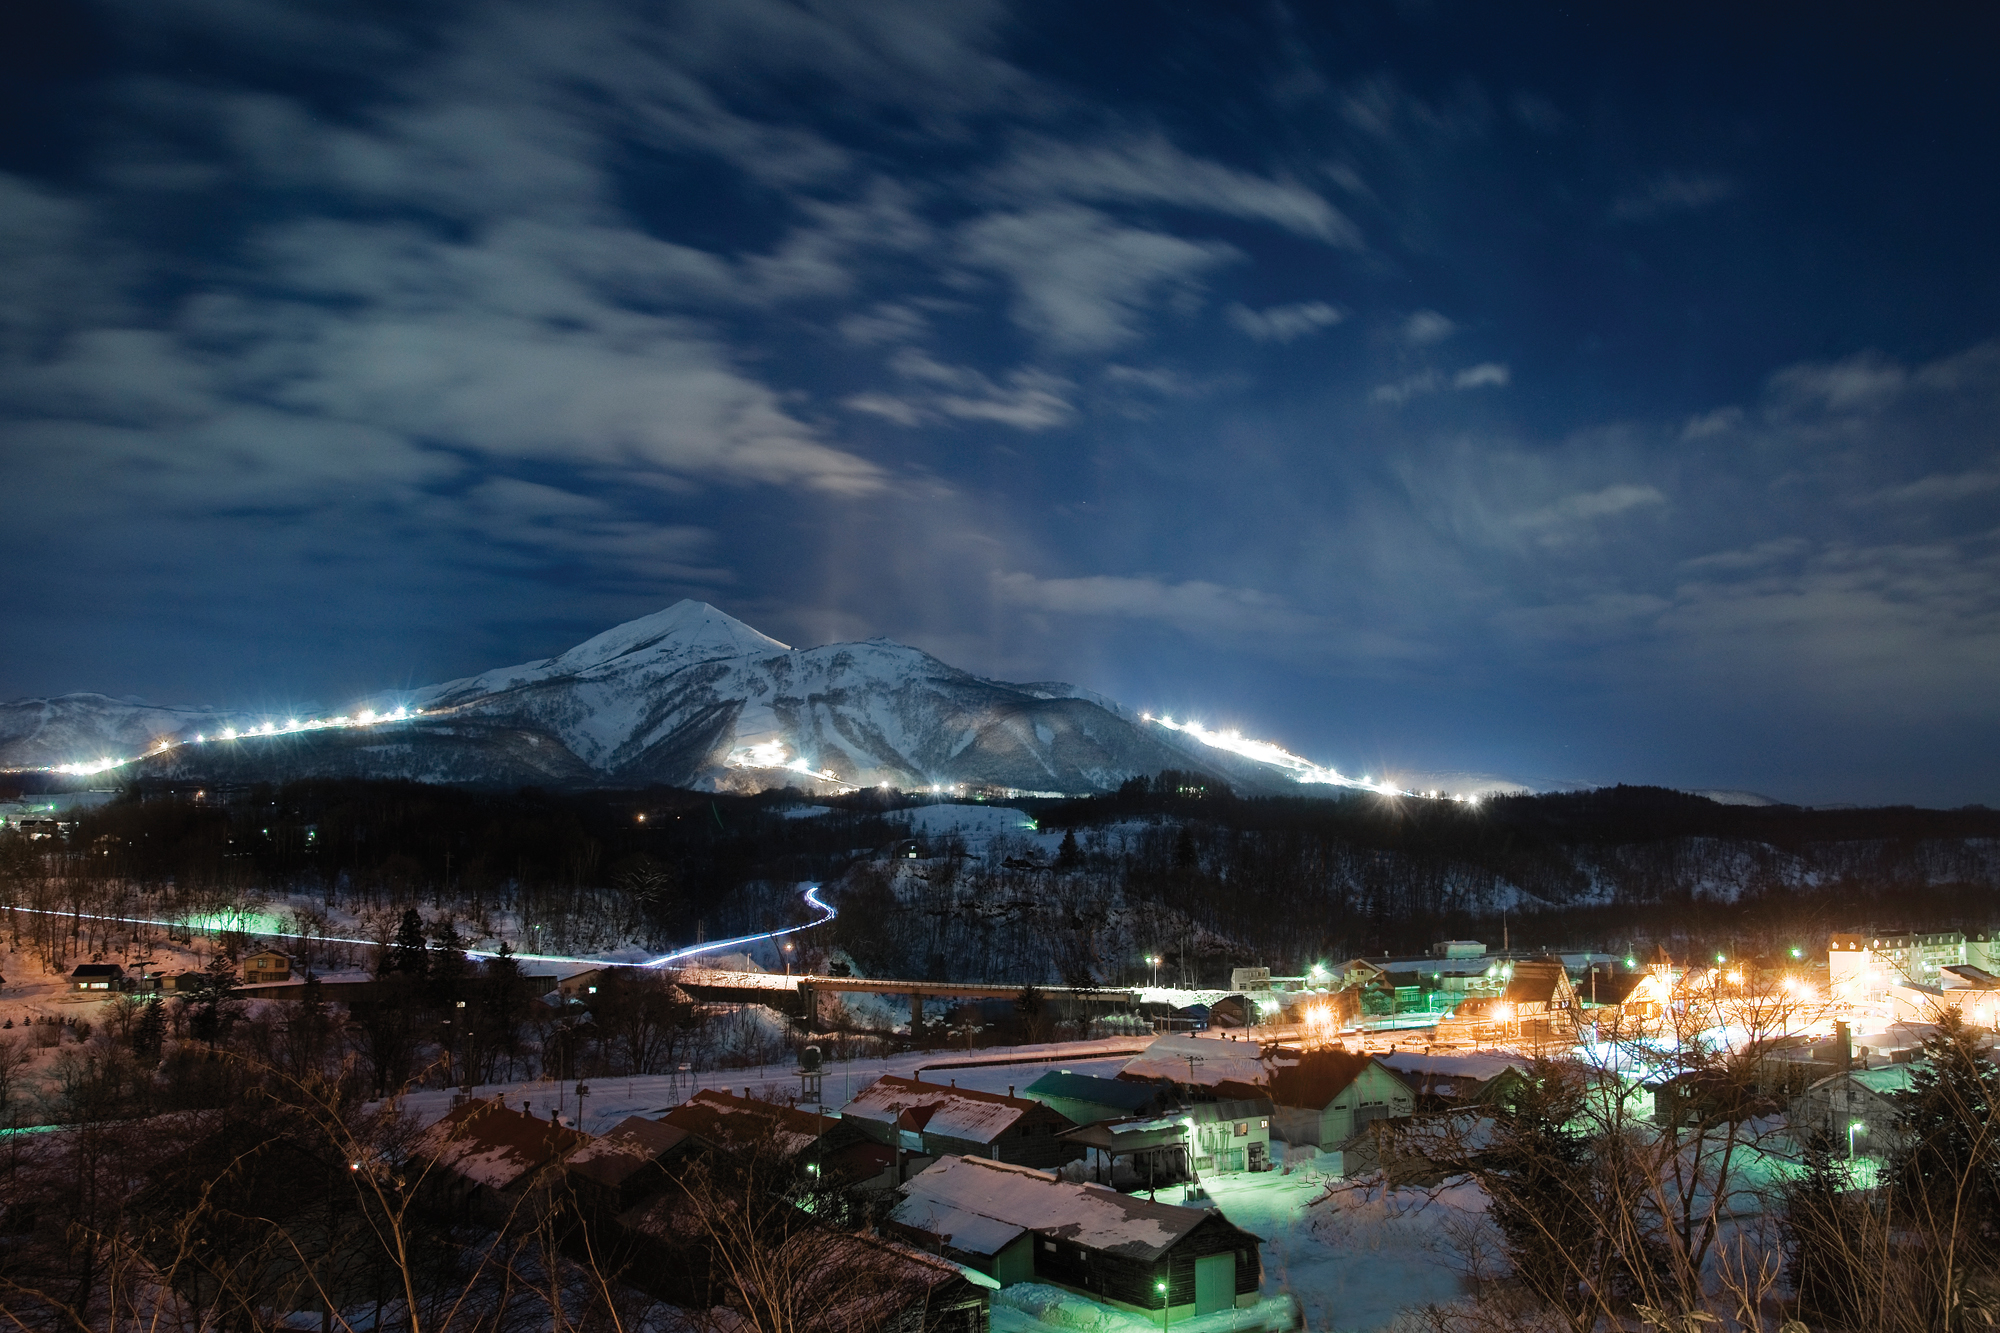 Night Skiing: Niseko's is among the best